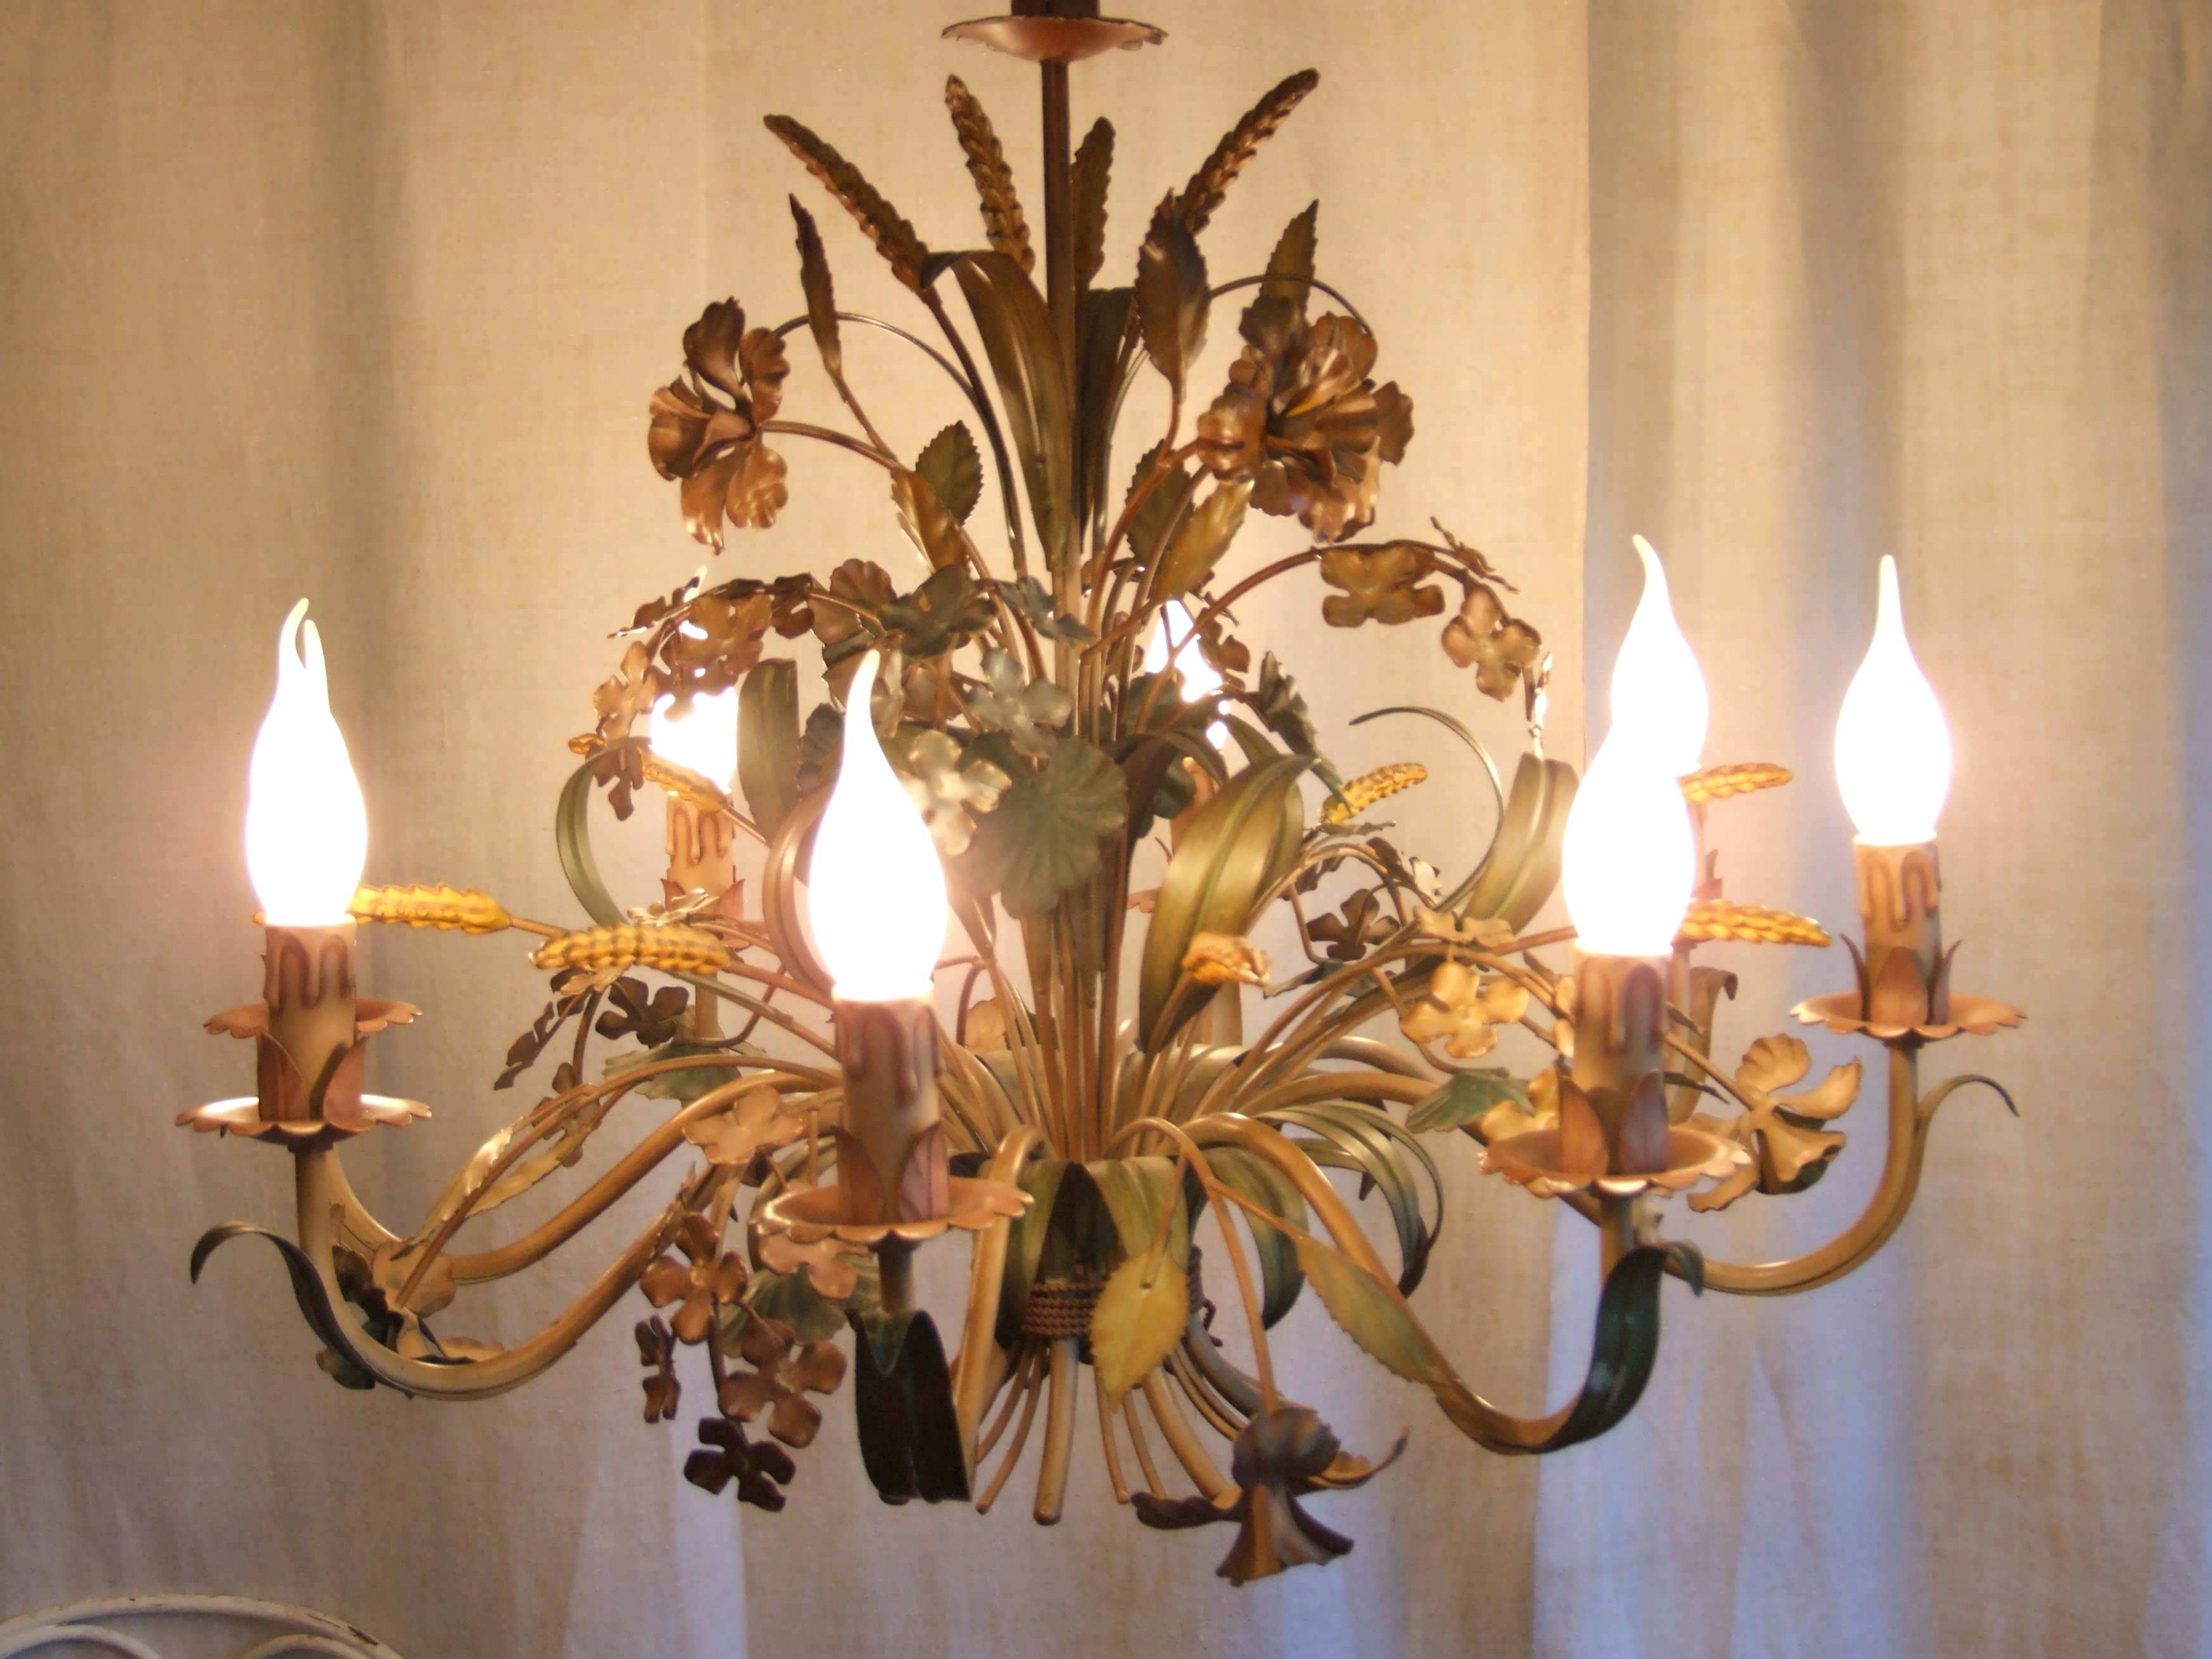 Popular Vintage Italian Chandeliers Intended For Chandeliers : Vintage Floral Chandeliers Metal Flower Chandelier (View 7 of 15)